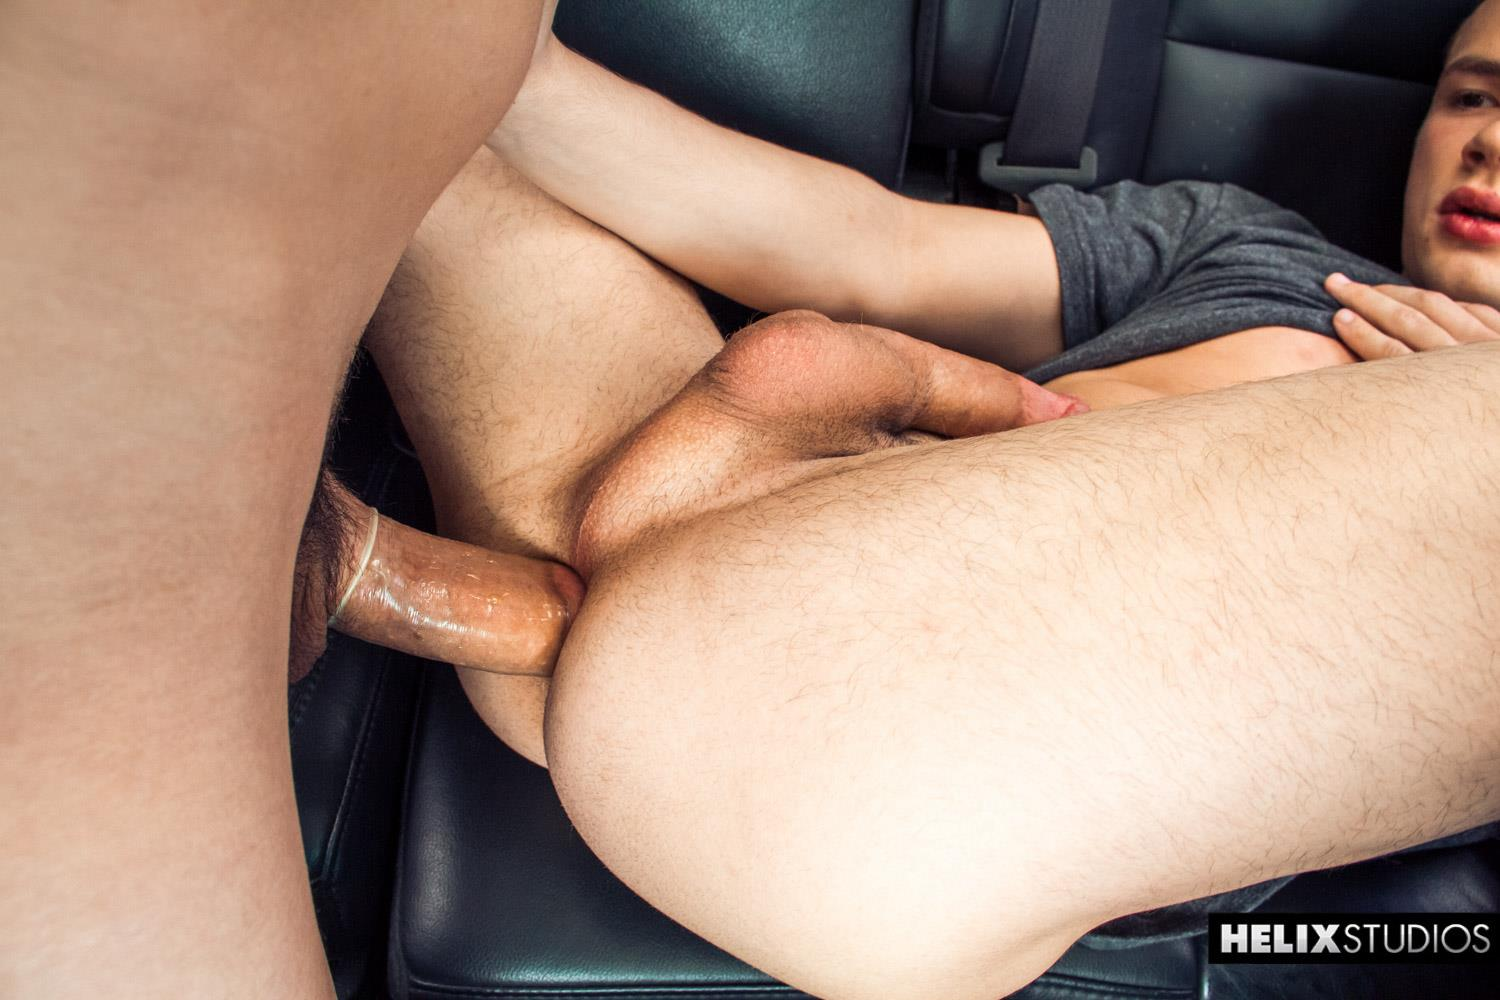 Helix Studios Troy Ryan and Logan Cross Big Cock Twinks Fucking In A Car Amateur Gay Porn 21 Troy Ryan Fucking Another Twink In The Backseat Of His Car